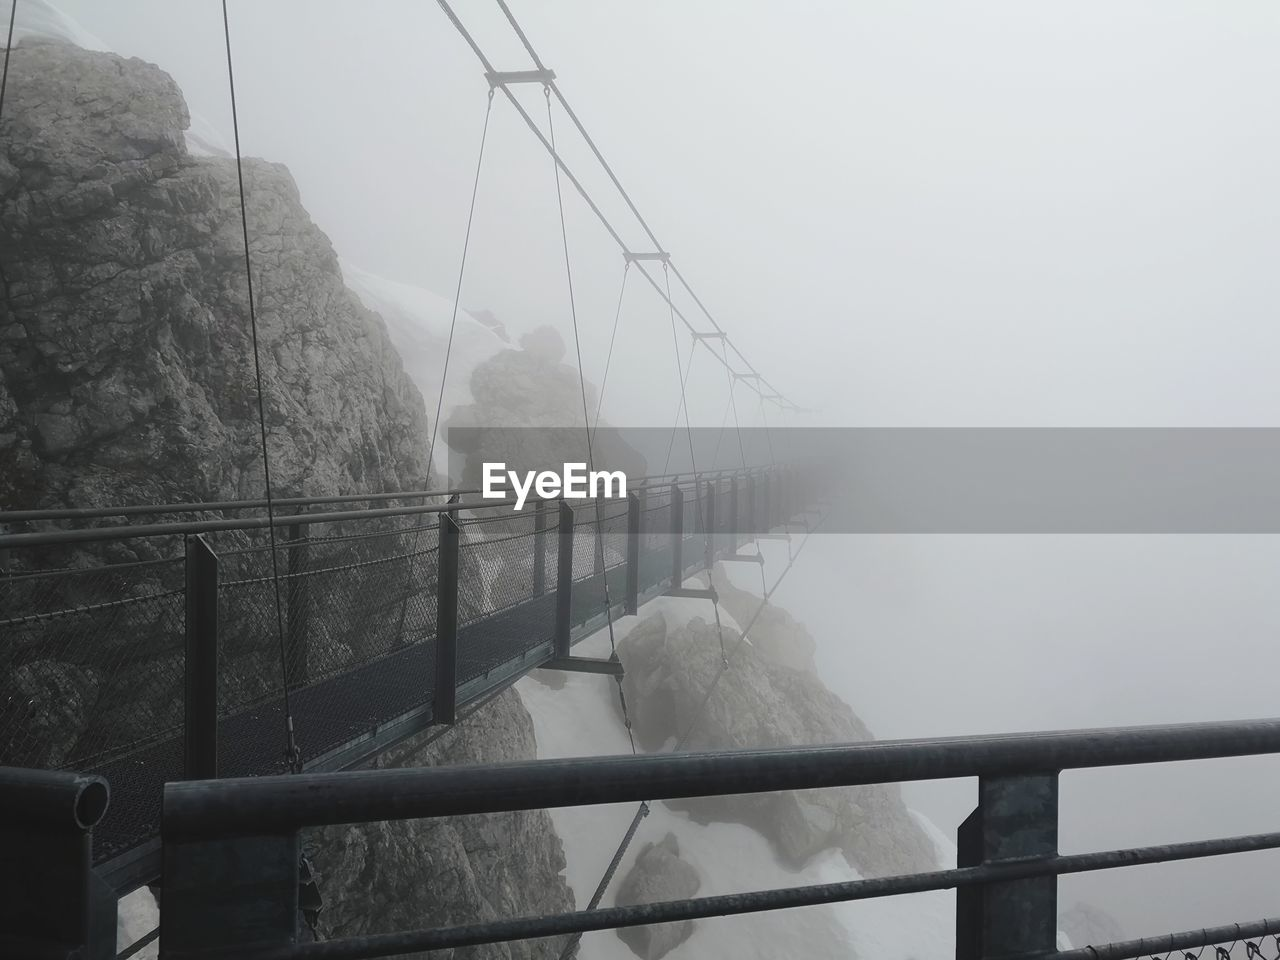 fog, railing, cold temperature, nature, winter, bridge, bridge - man made structure, day, real people, connection, transportation, snow, sky, outdoors, water, beauty in nature, architecture, built structure, lifestyles, footbridge